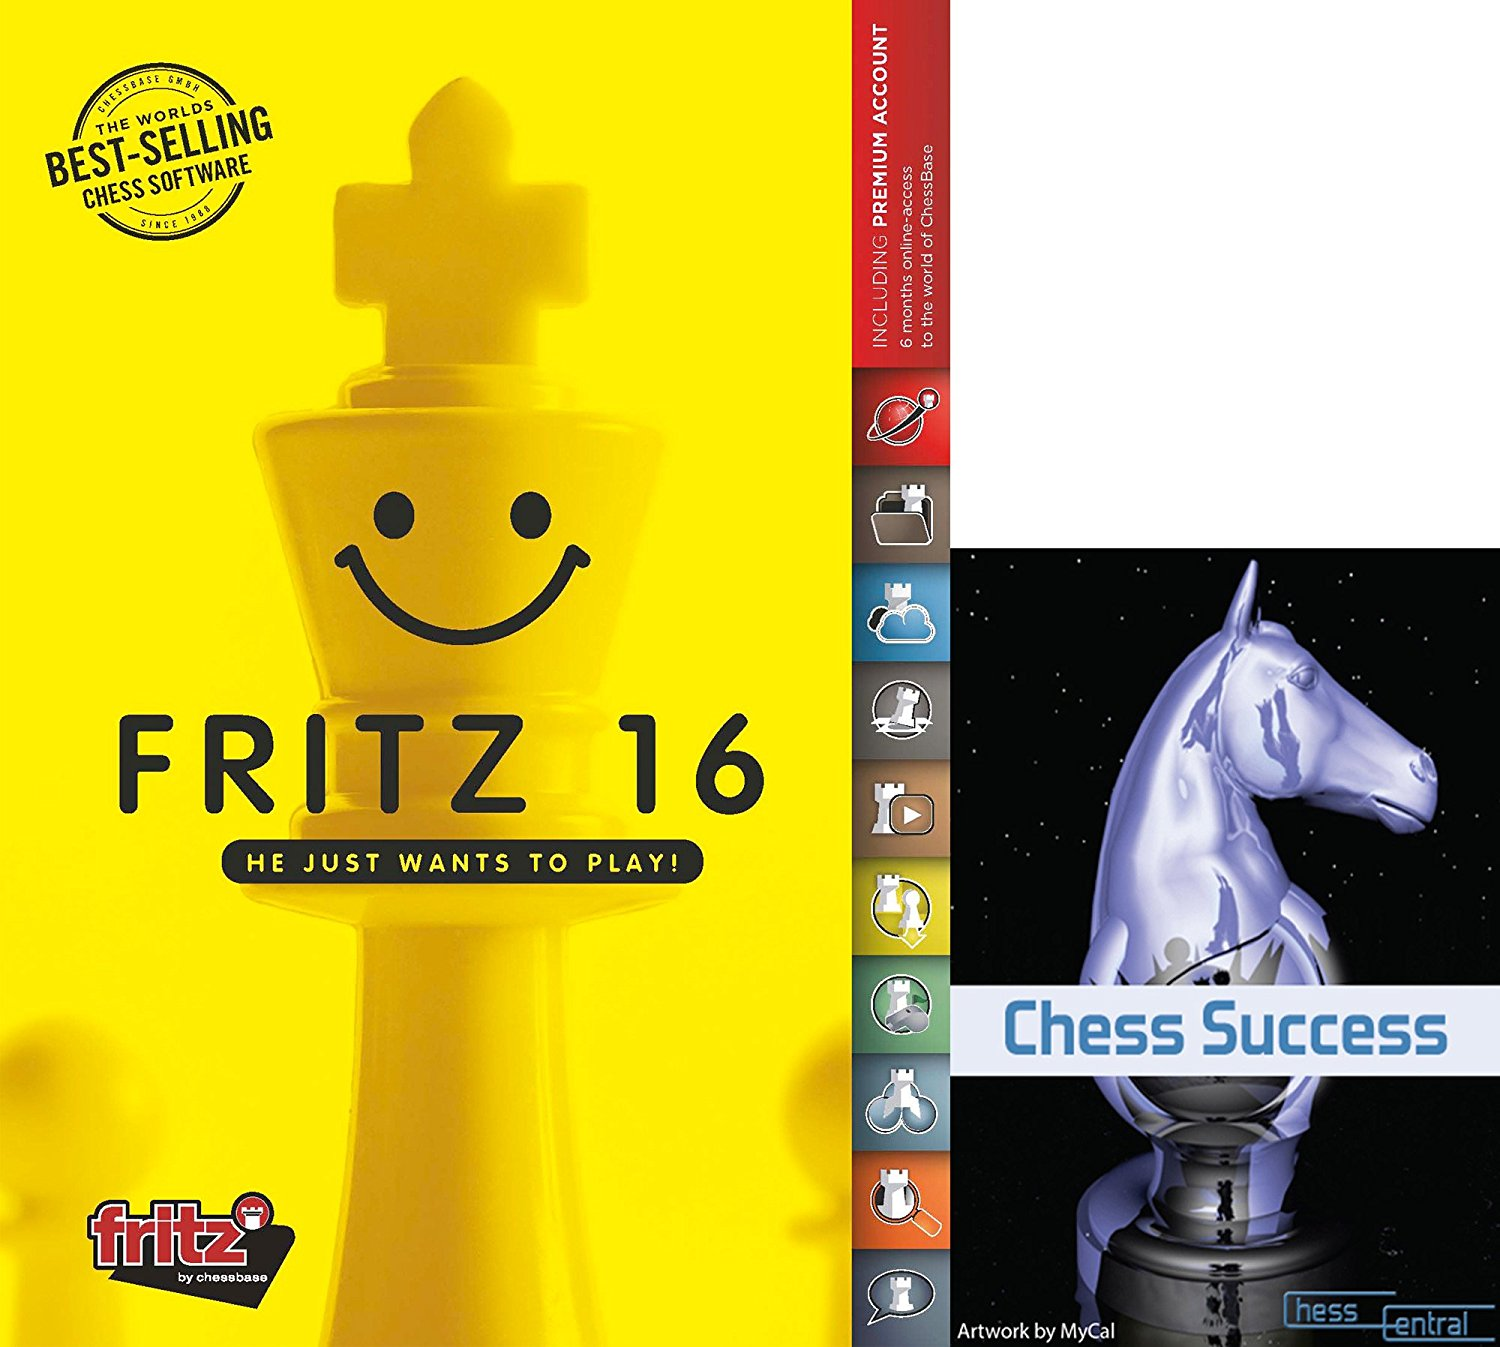 Fritz 16 Chess Playing and Training Software with Chess Success Training DVD by